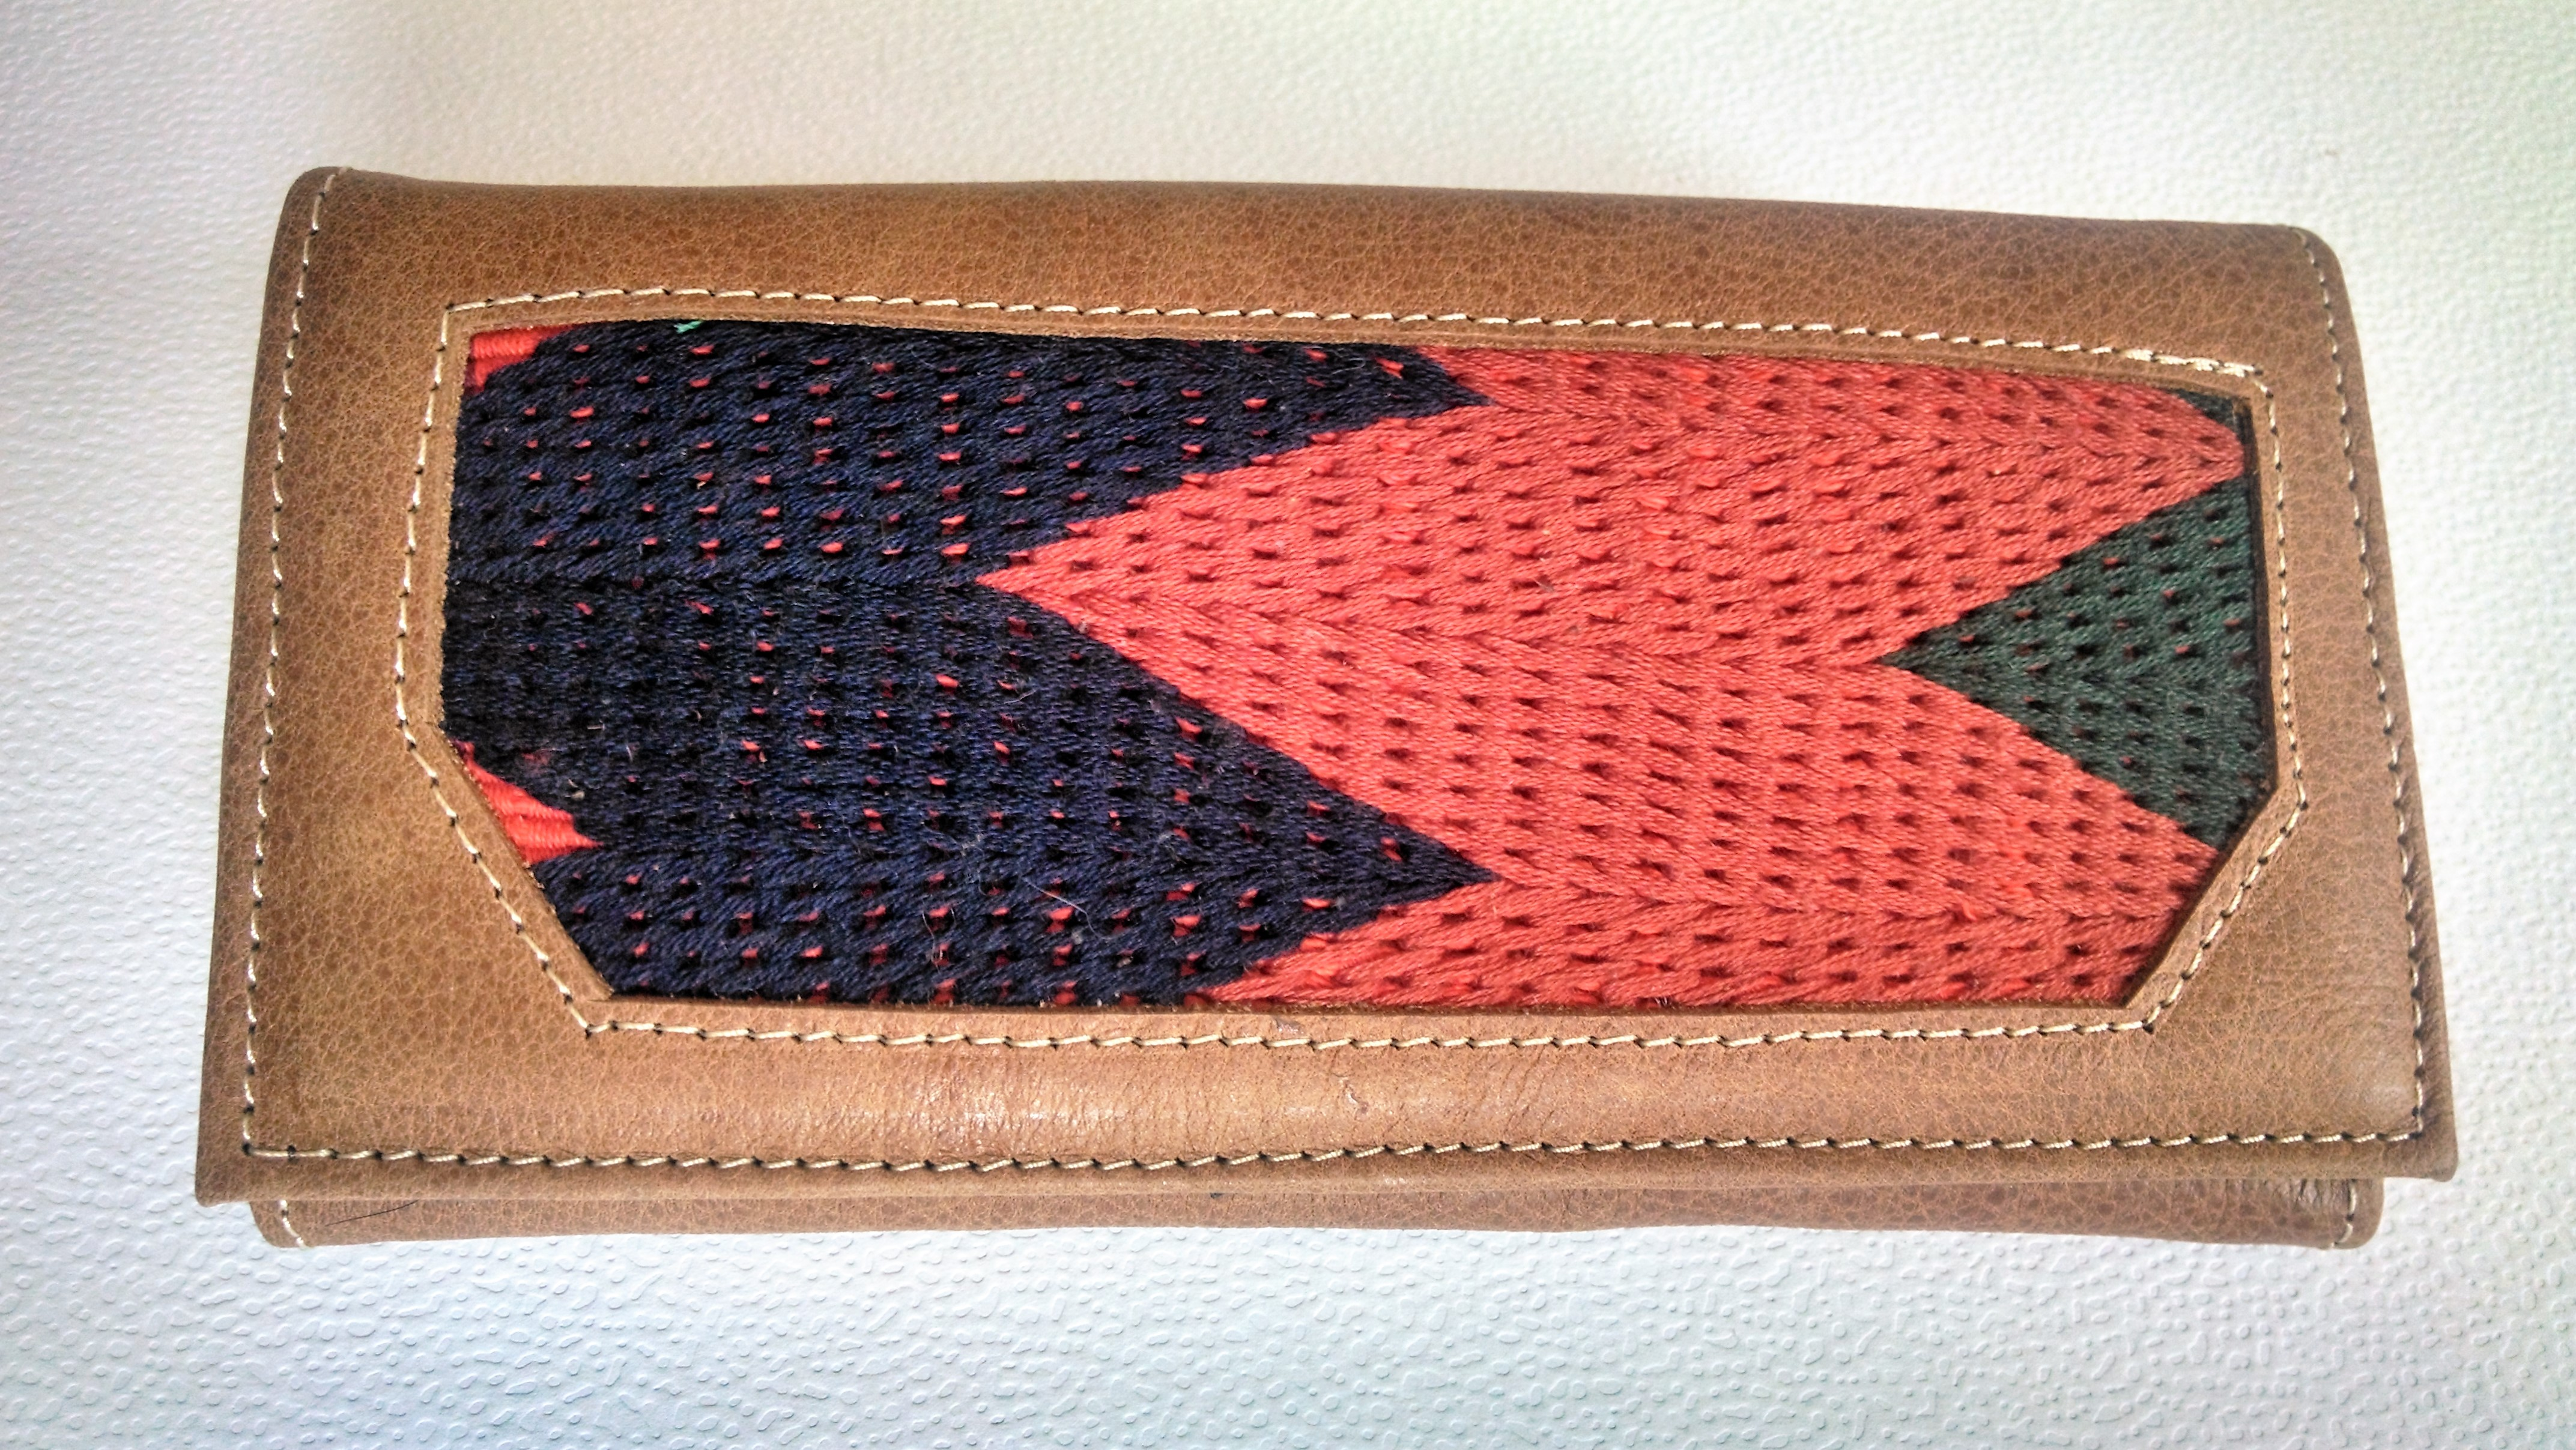 dfb5ae46a9 Oaxaca Embroidered Leather Wallet